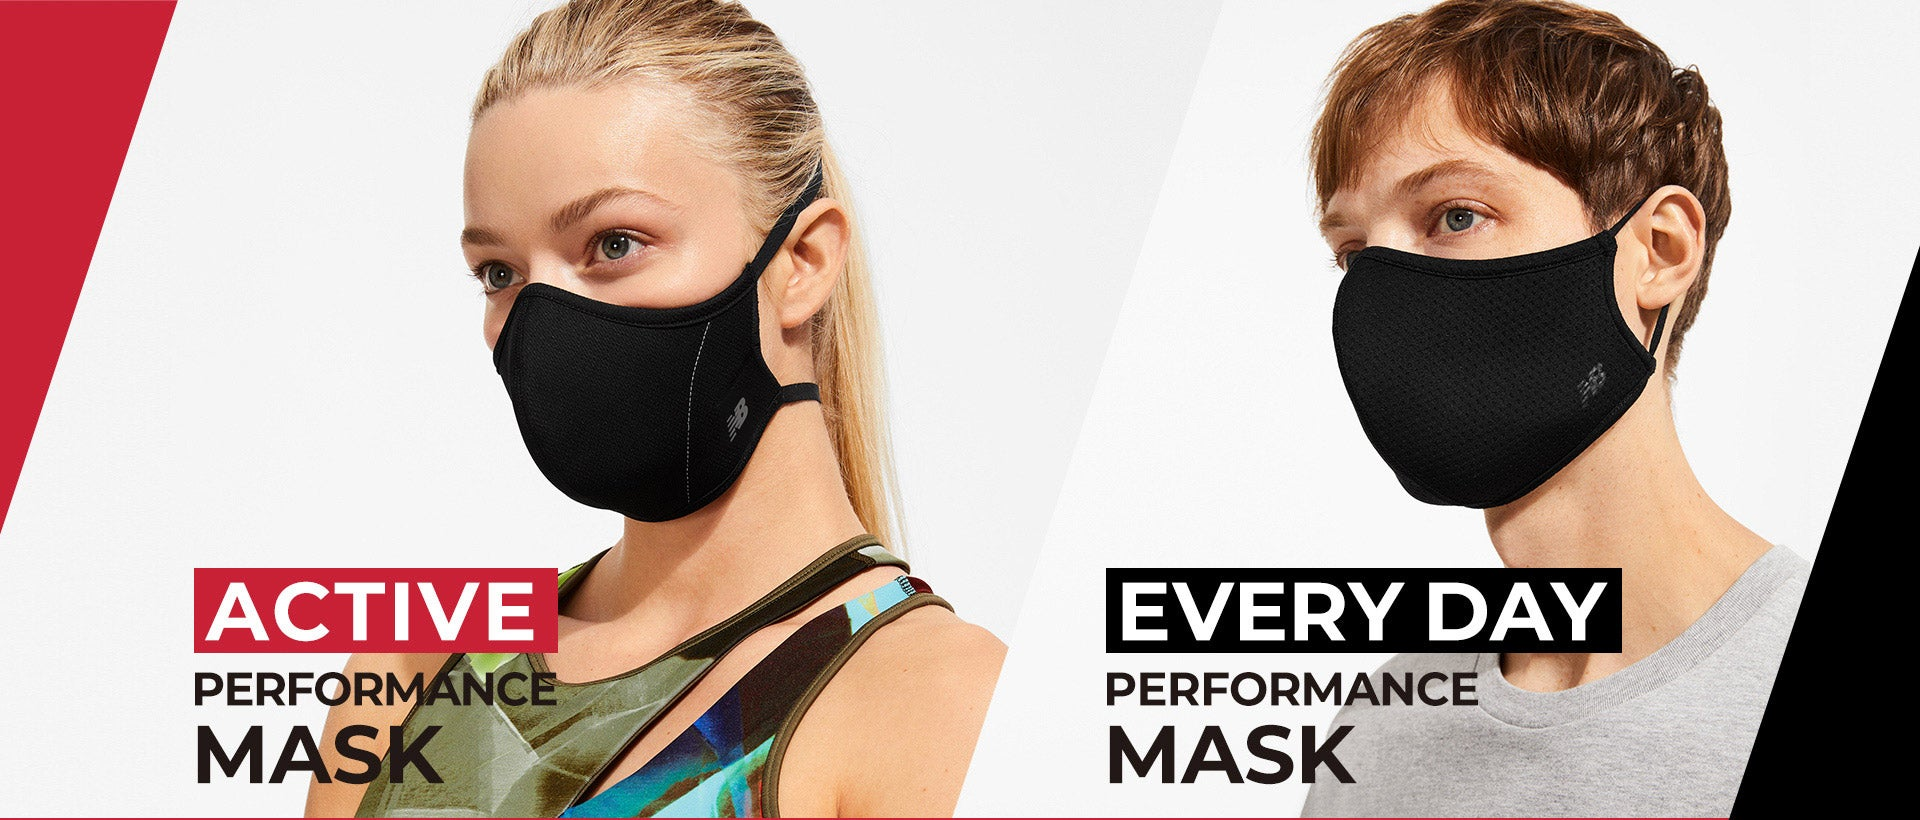 Active Performance Mask, Every day Performance Mask.